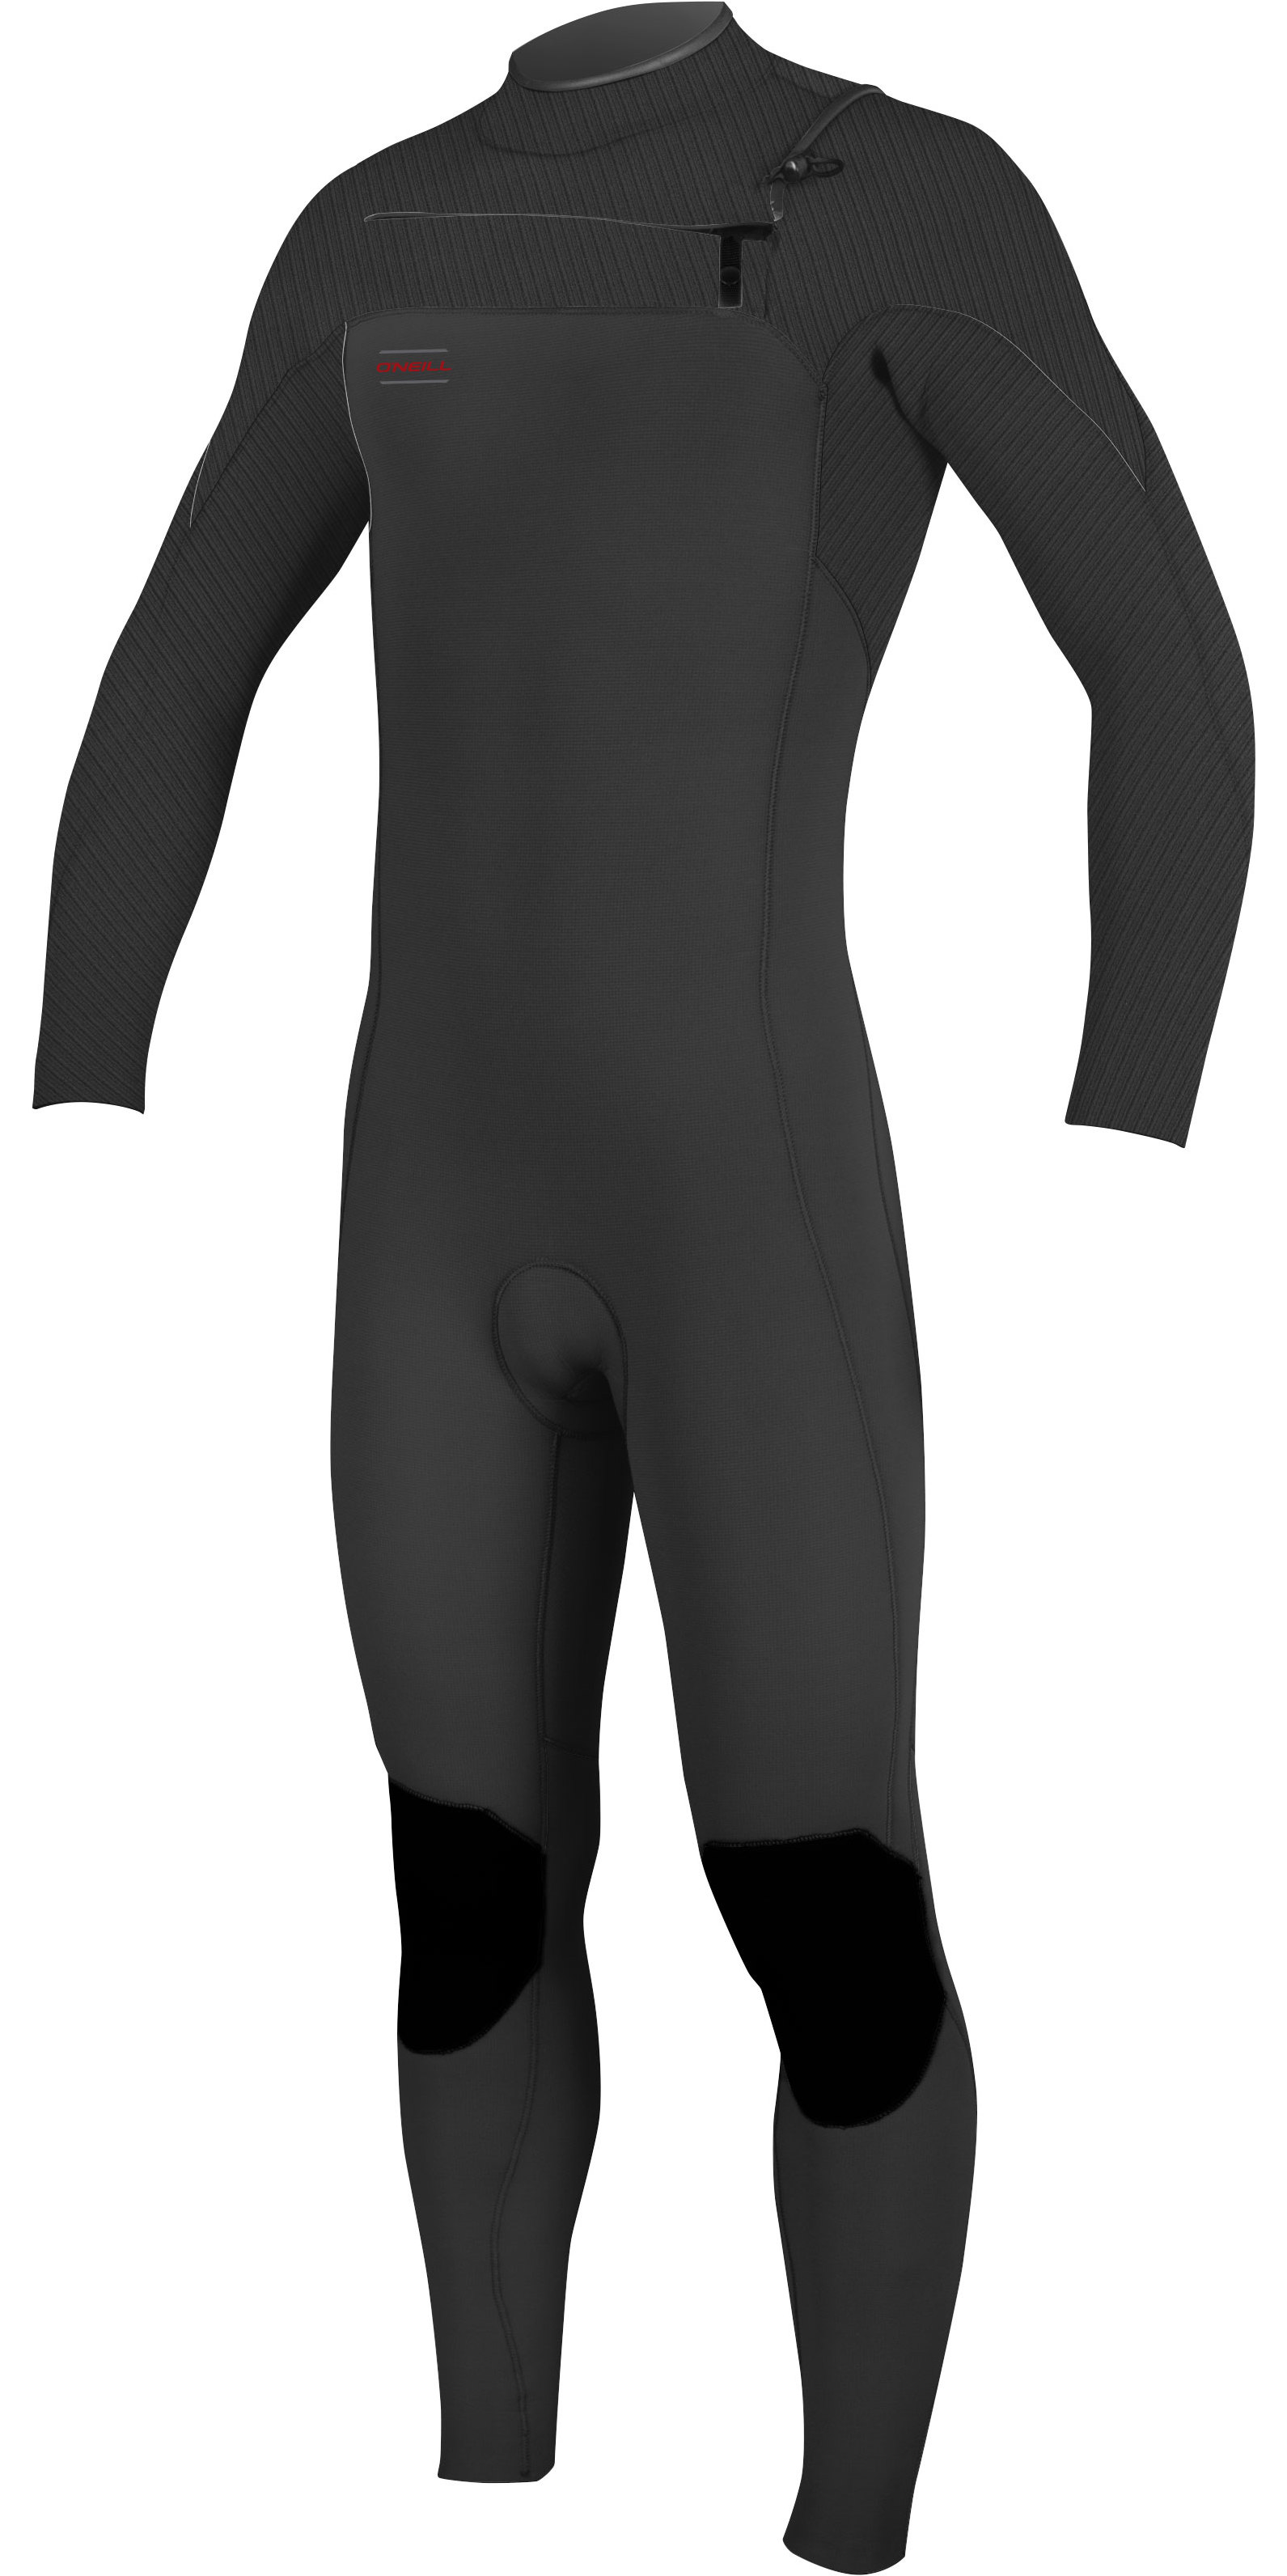 2019 O'Neill Mens Hyperfreak 4/3mm Chest Zip GBS Wetsuit Graphite 5001